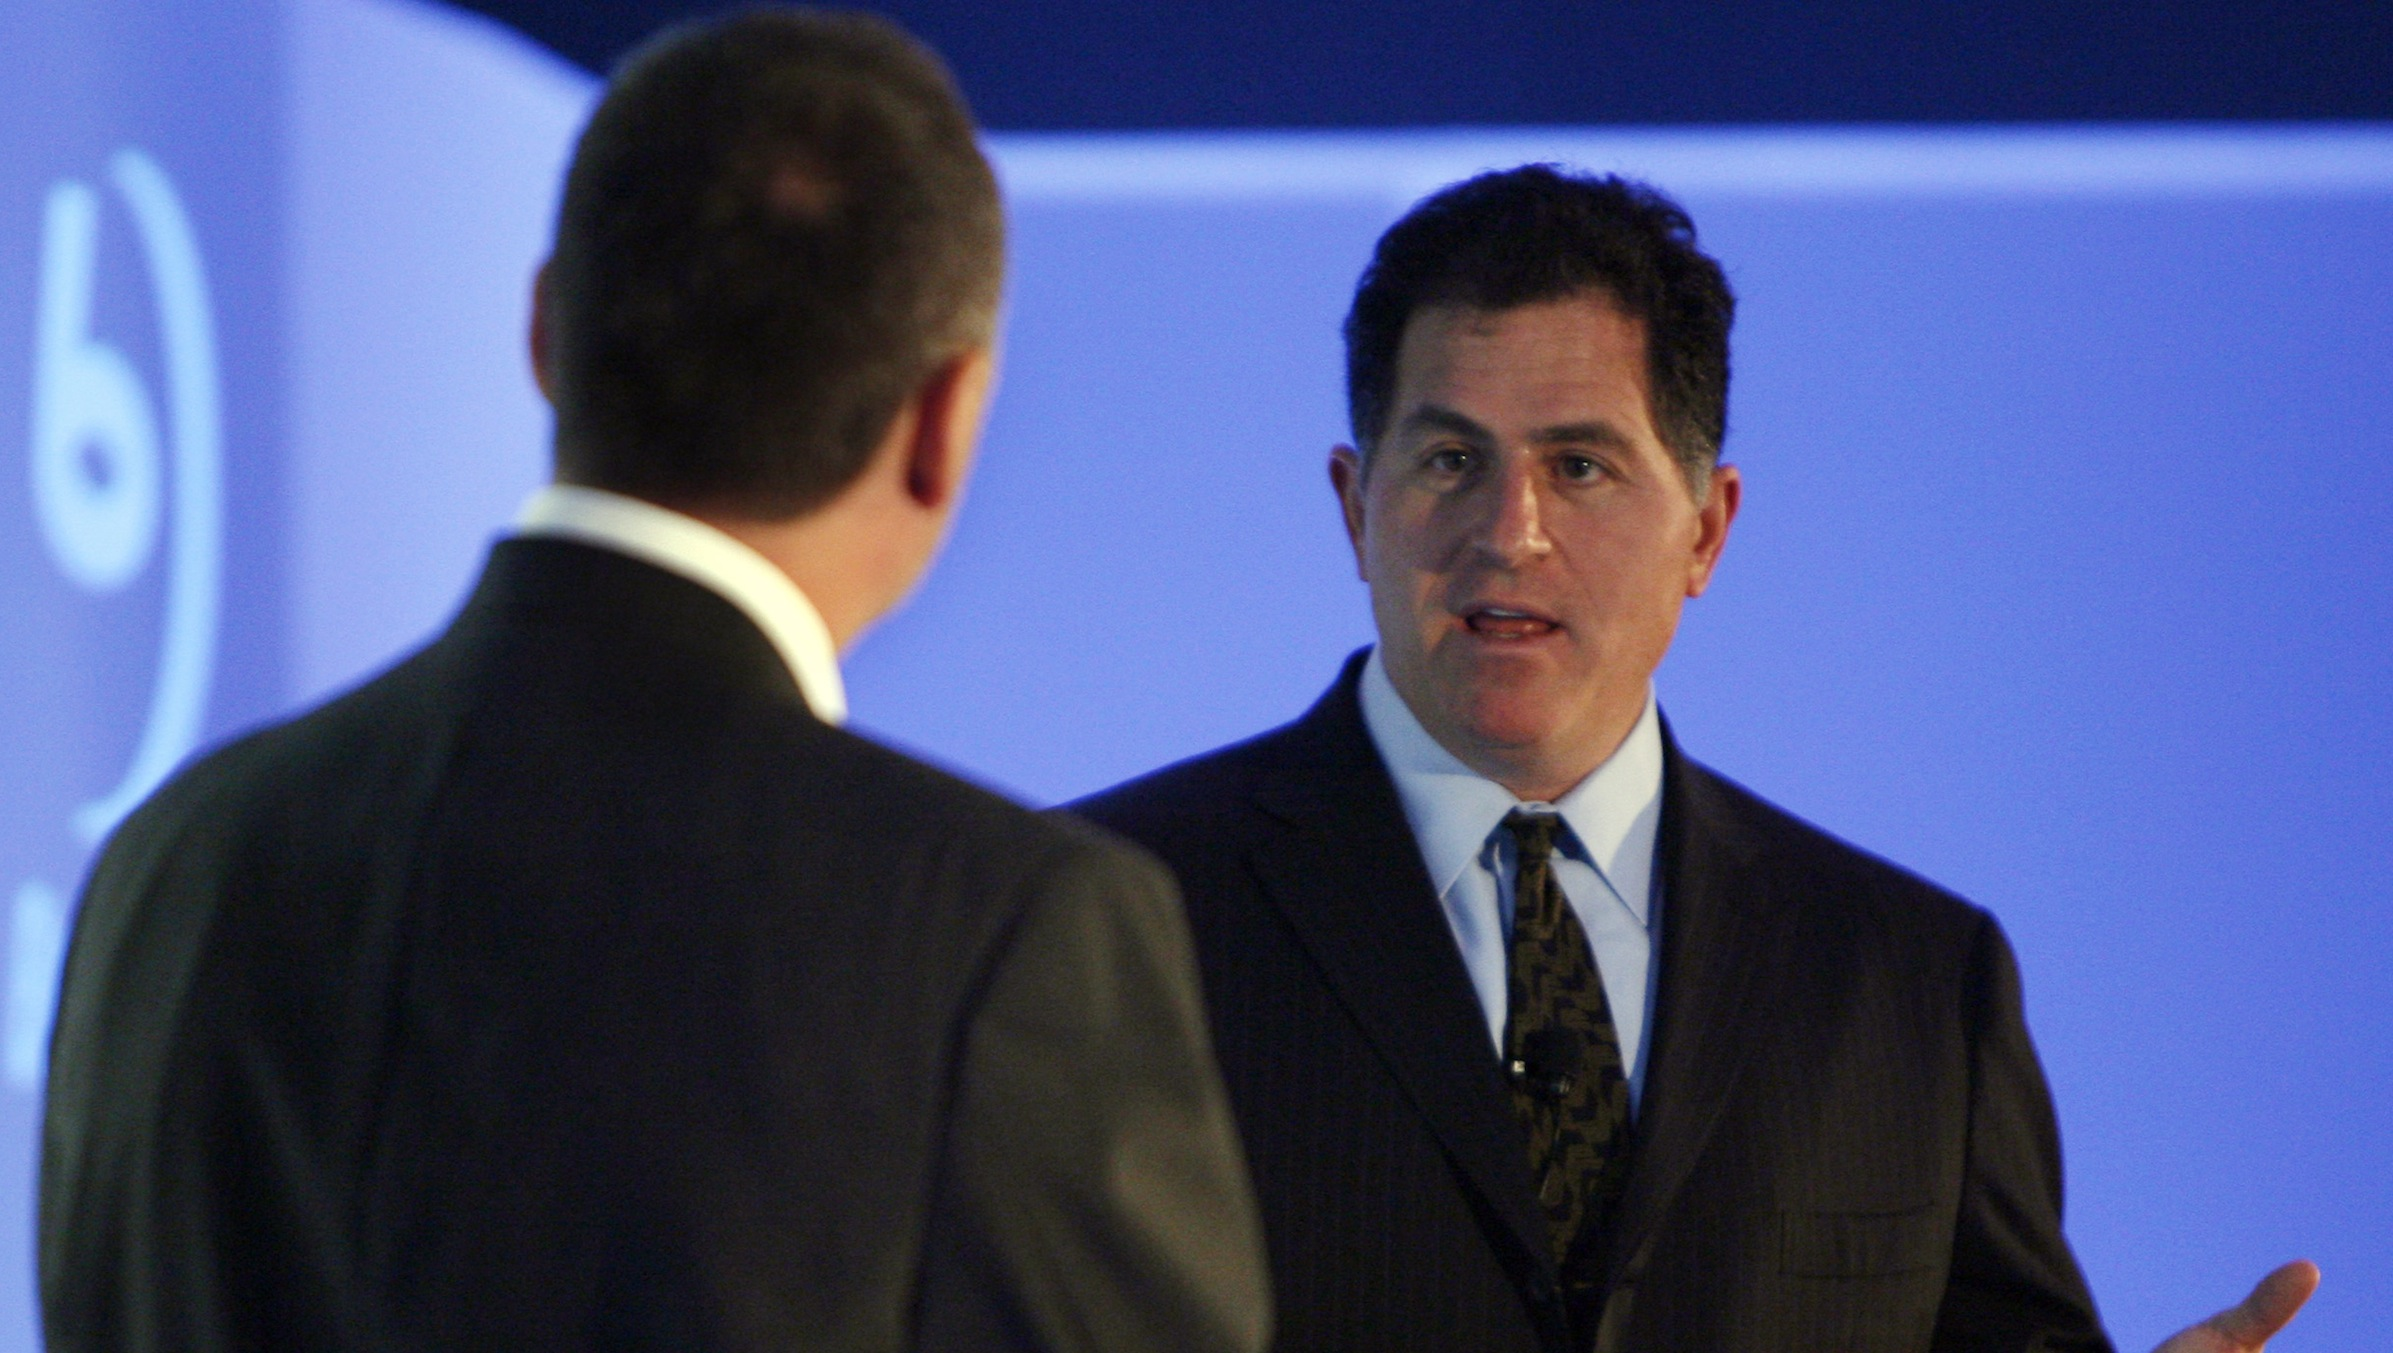 CEO of Dell Michael Dell, right, speaks to his Chief Technology Officer Kevin Kettler at a conference Tuesday, Sept 12, 2006 in New York.  (AP Photo/Seth Wenig)